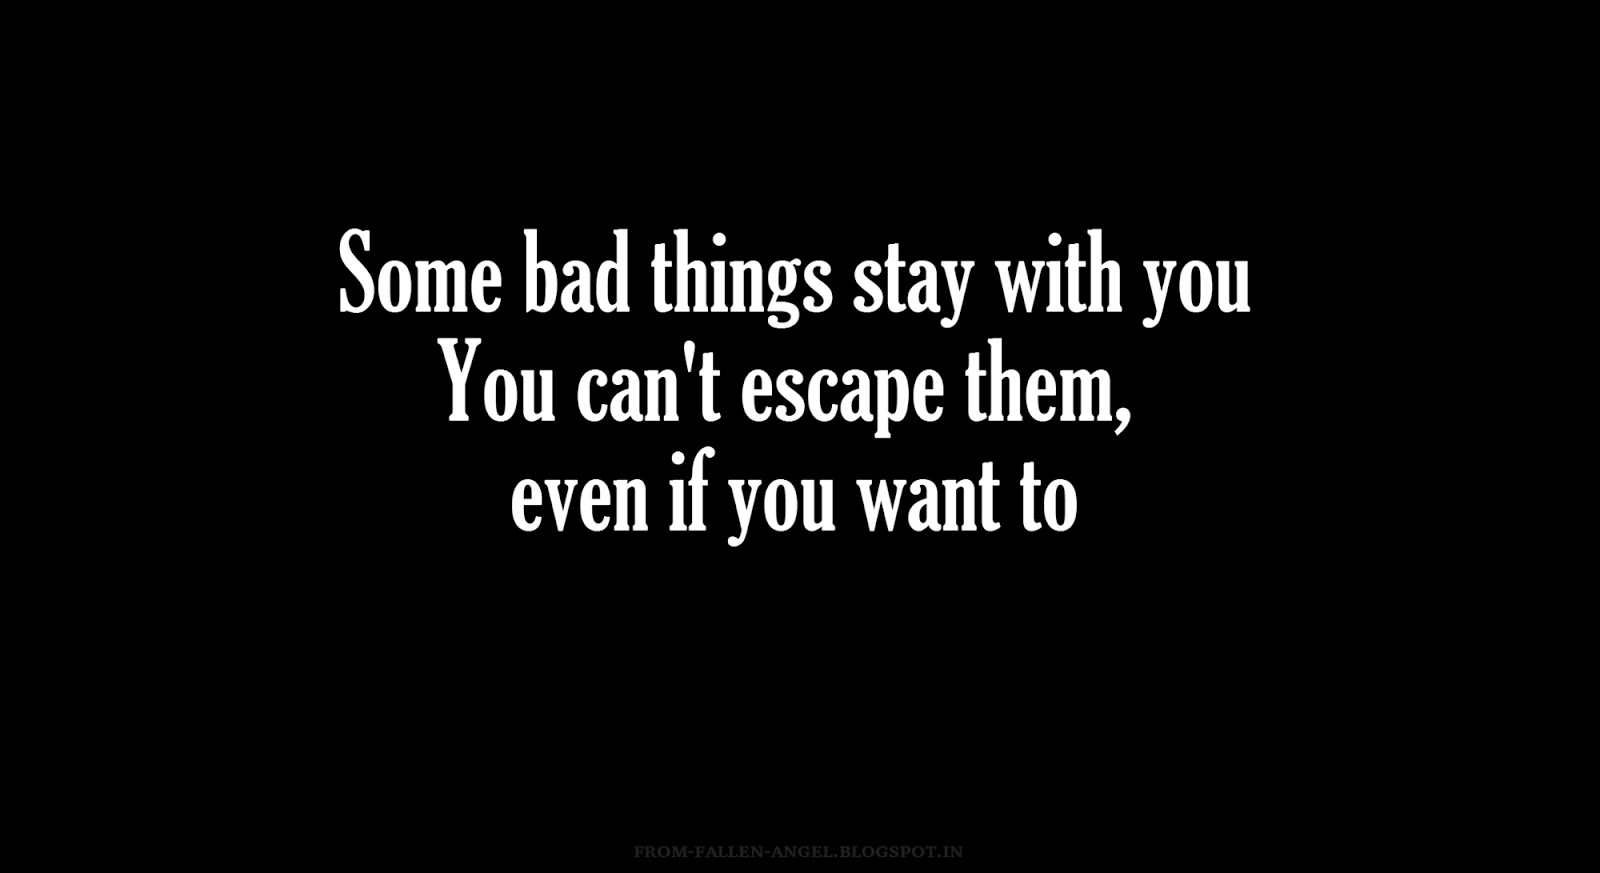 Some bad things stay with you. You can't escape them, even if you want to